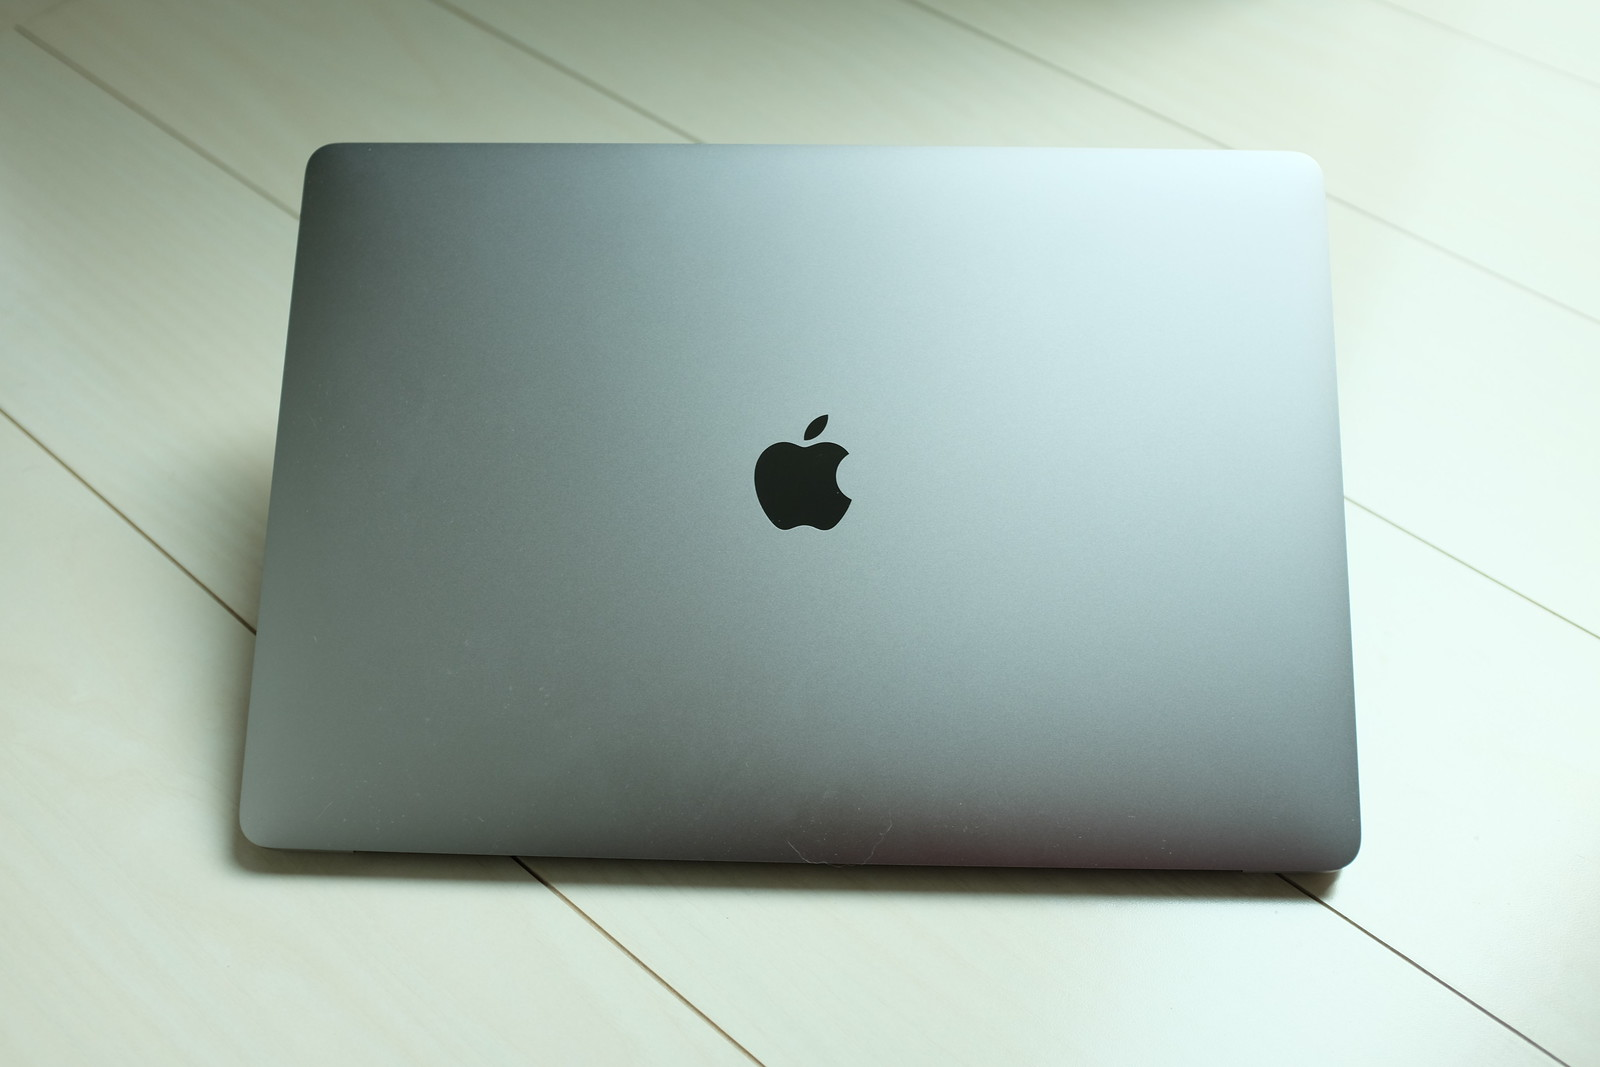 MacBook Pro (Late 2016)